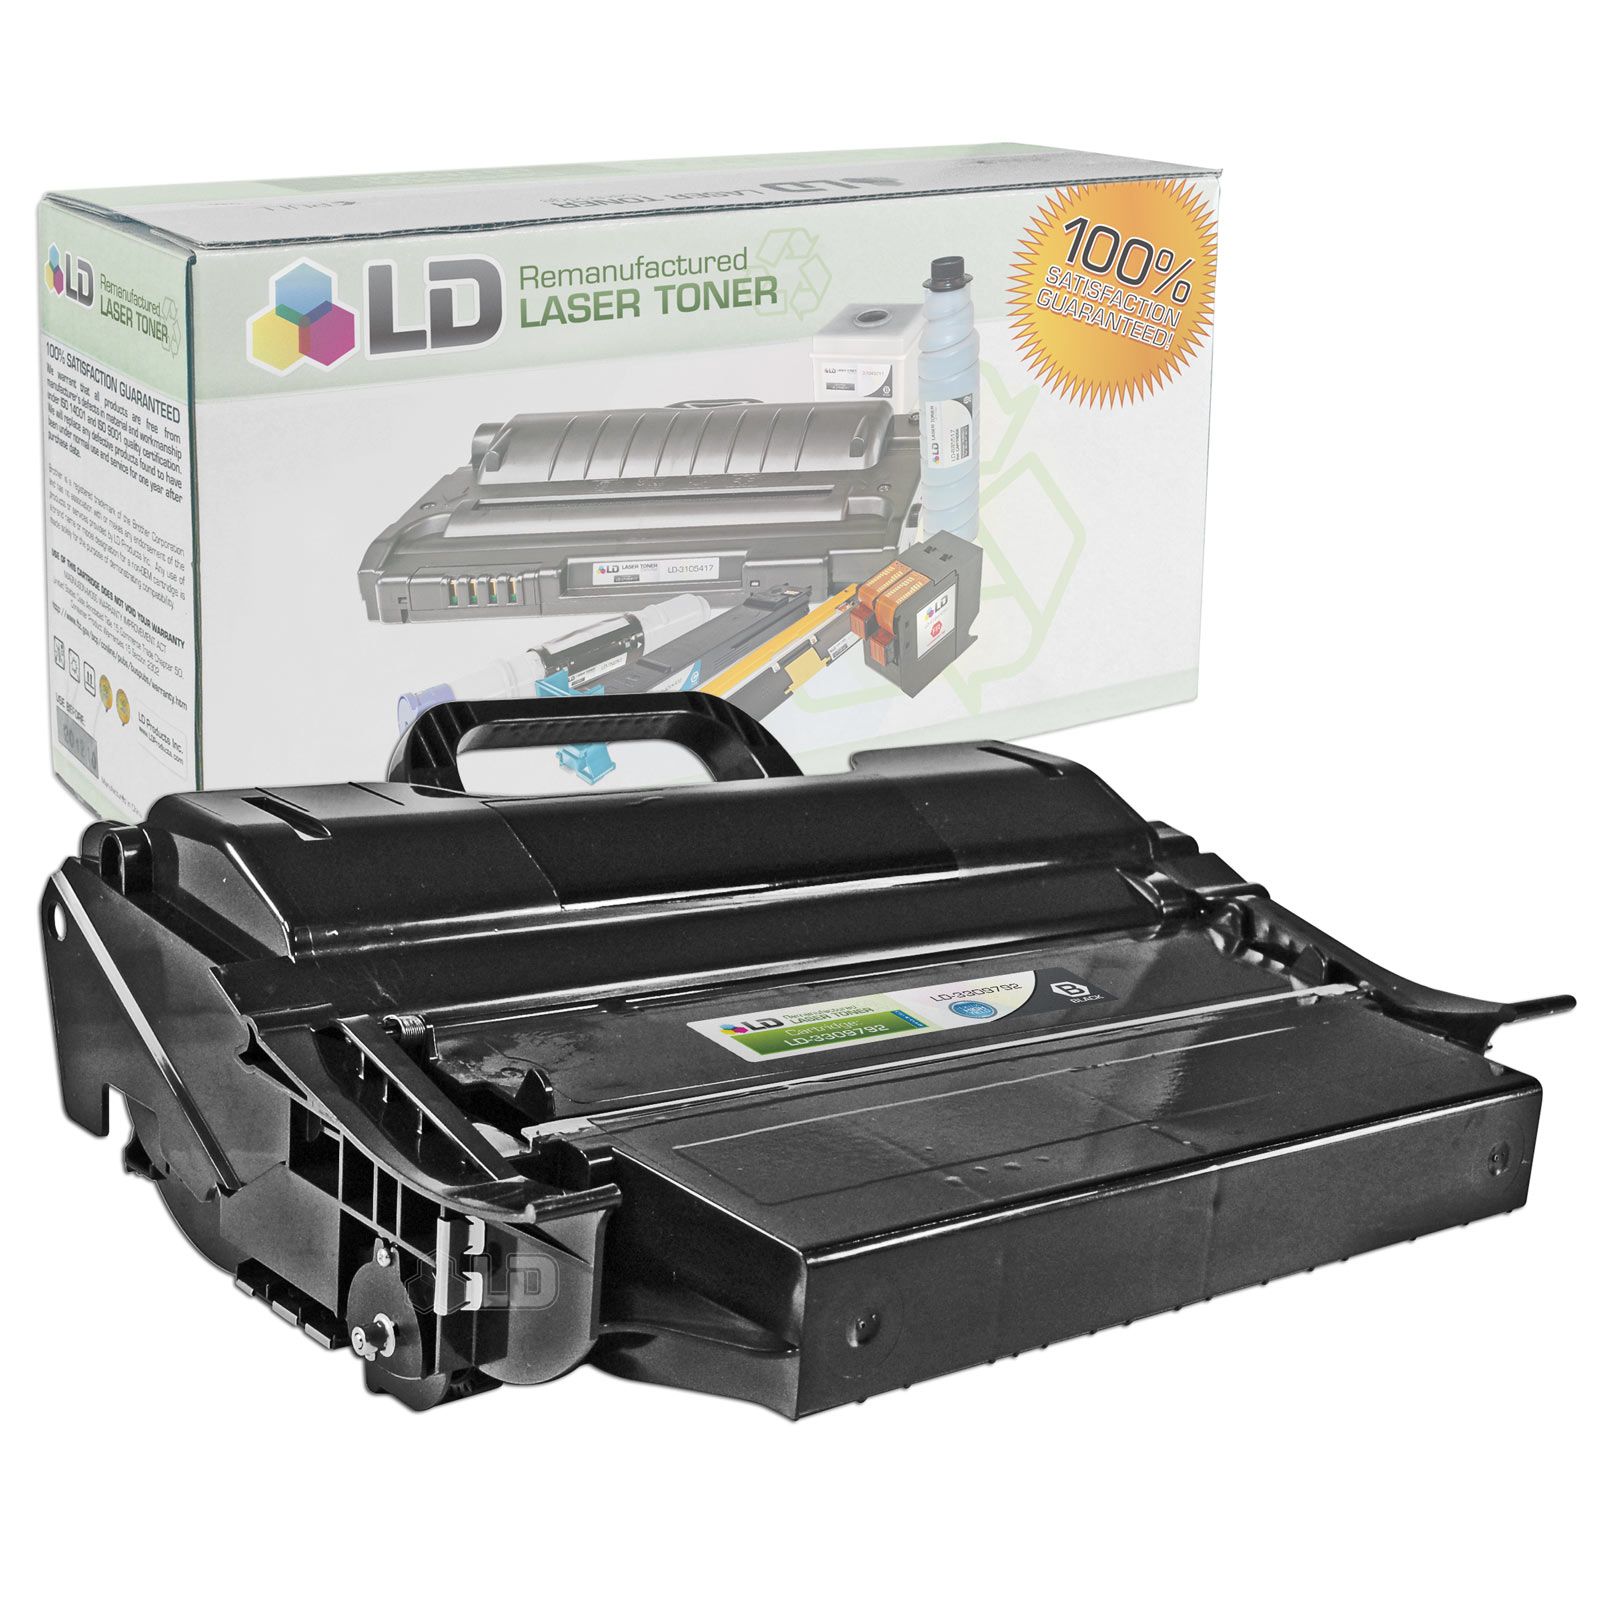 LD Refurbished Toner to replace Dell 330-9792 (PK6Y4) Extra High Yield Black Toner Cartridge for your Dell 5530dn,